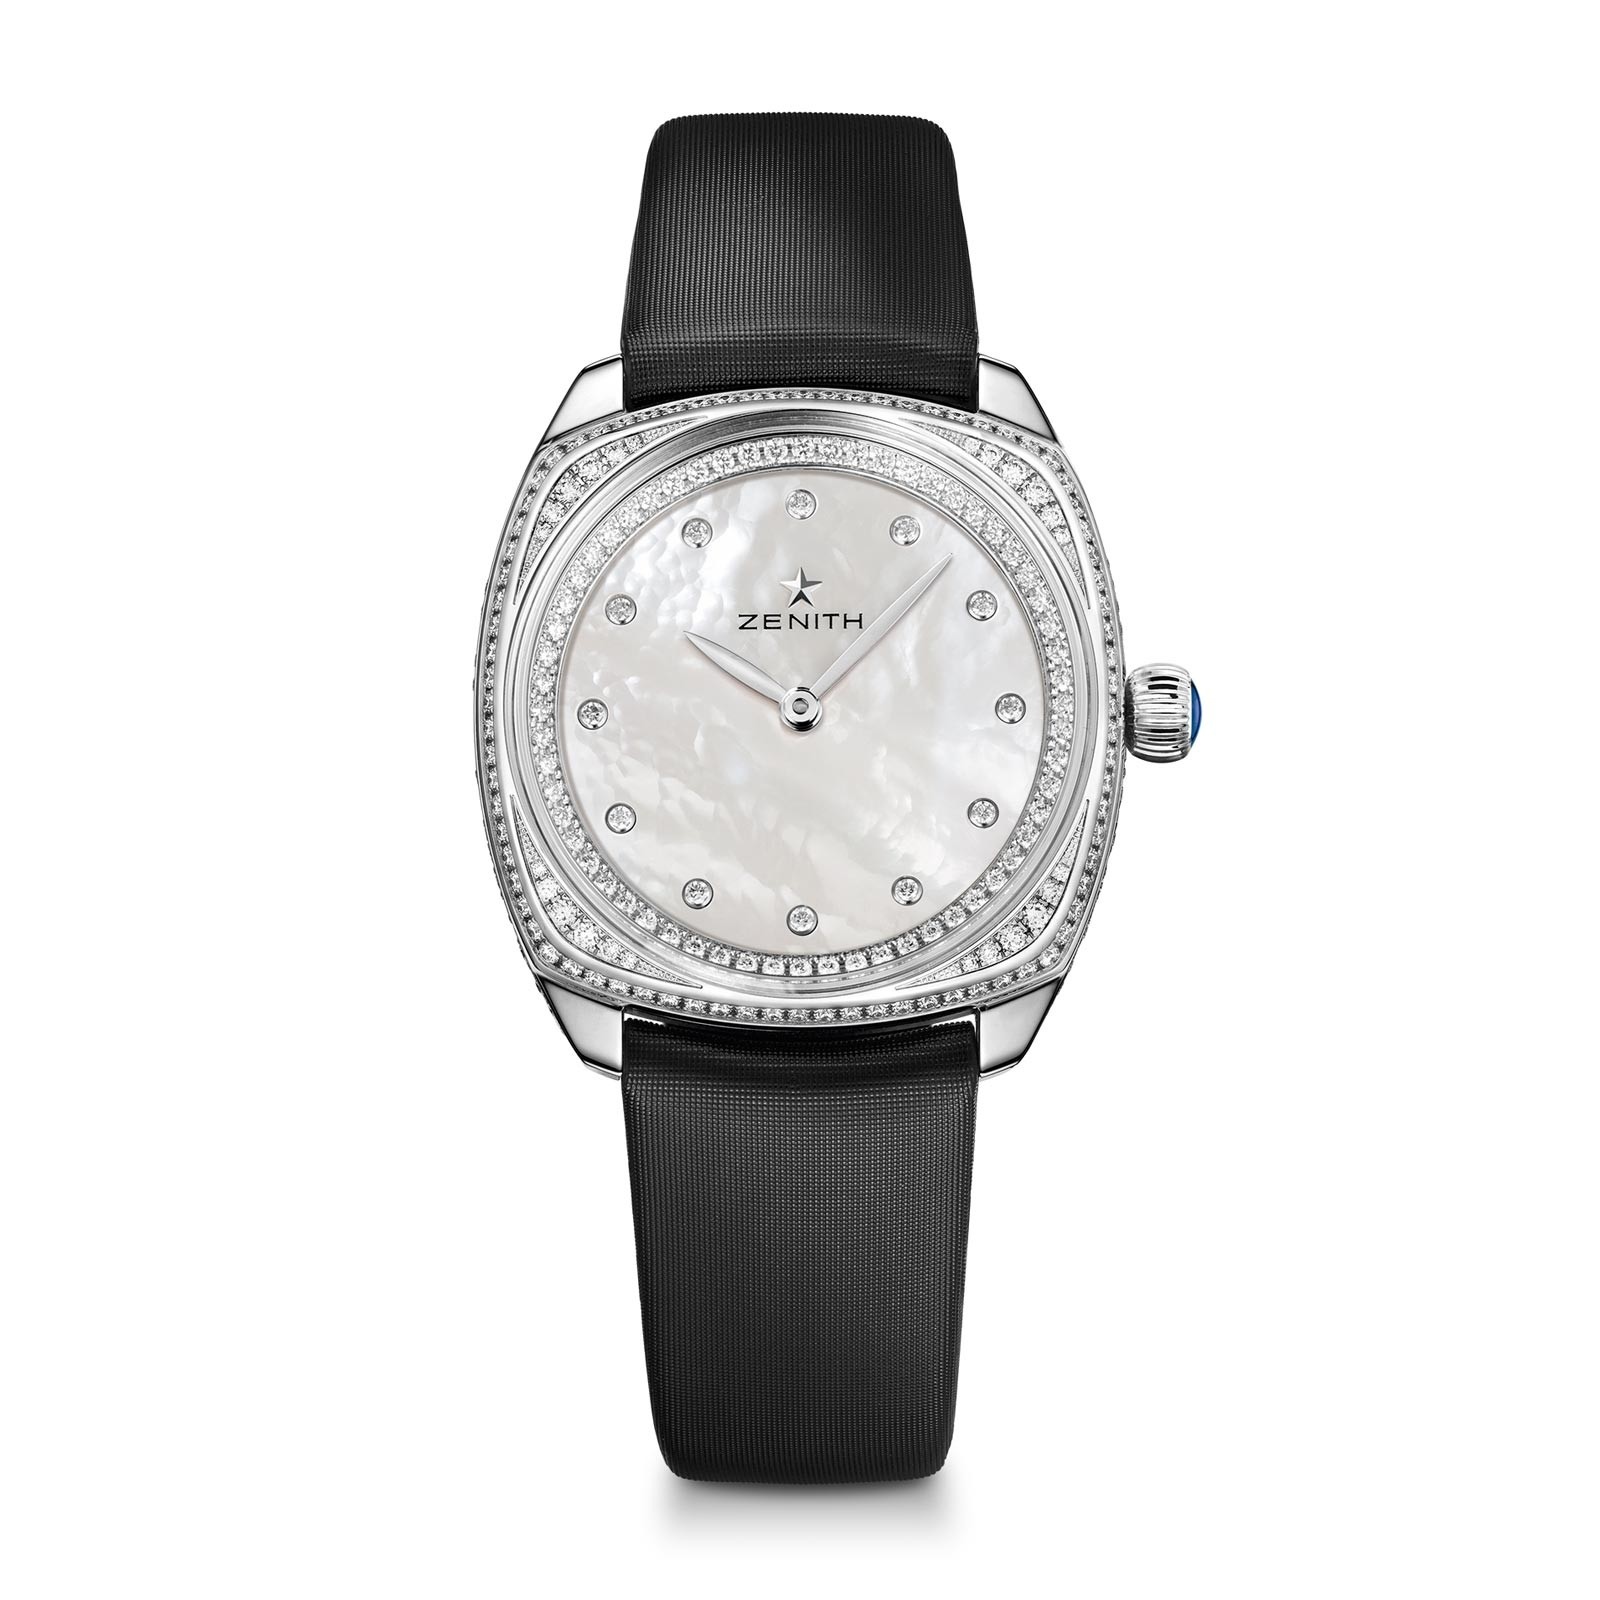 Zenith Star 33mm - White Gold Cushion Shaped Case